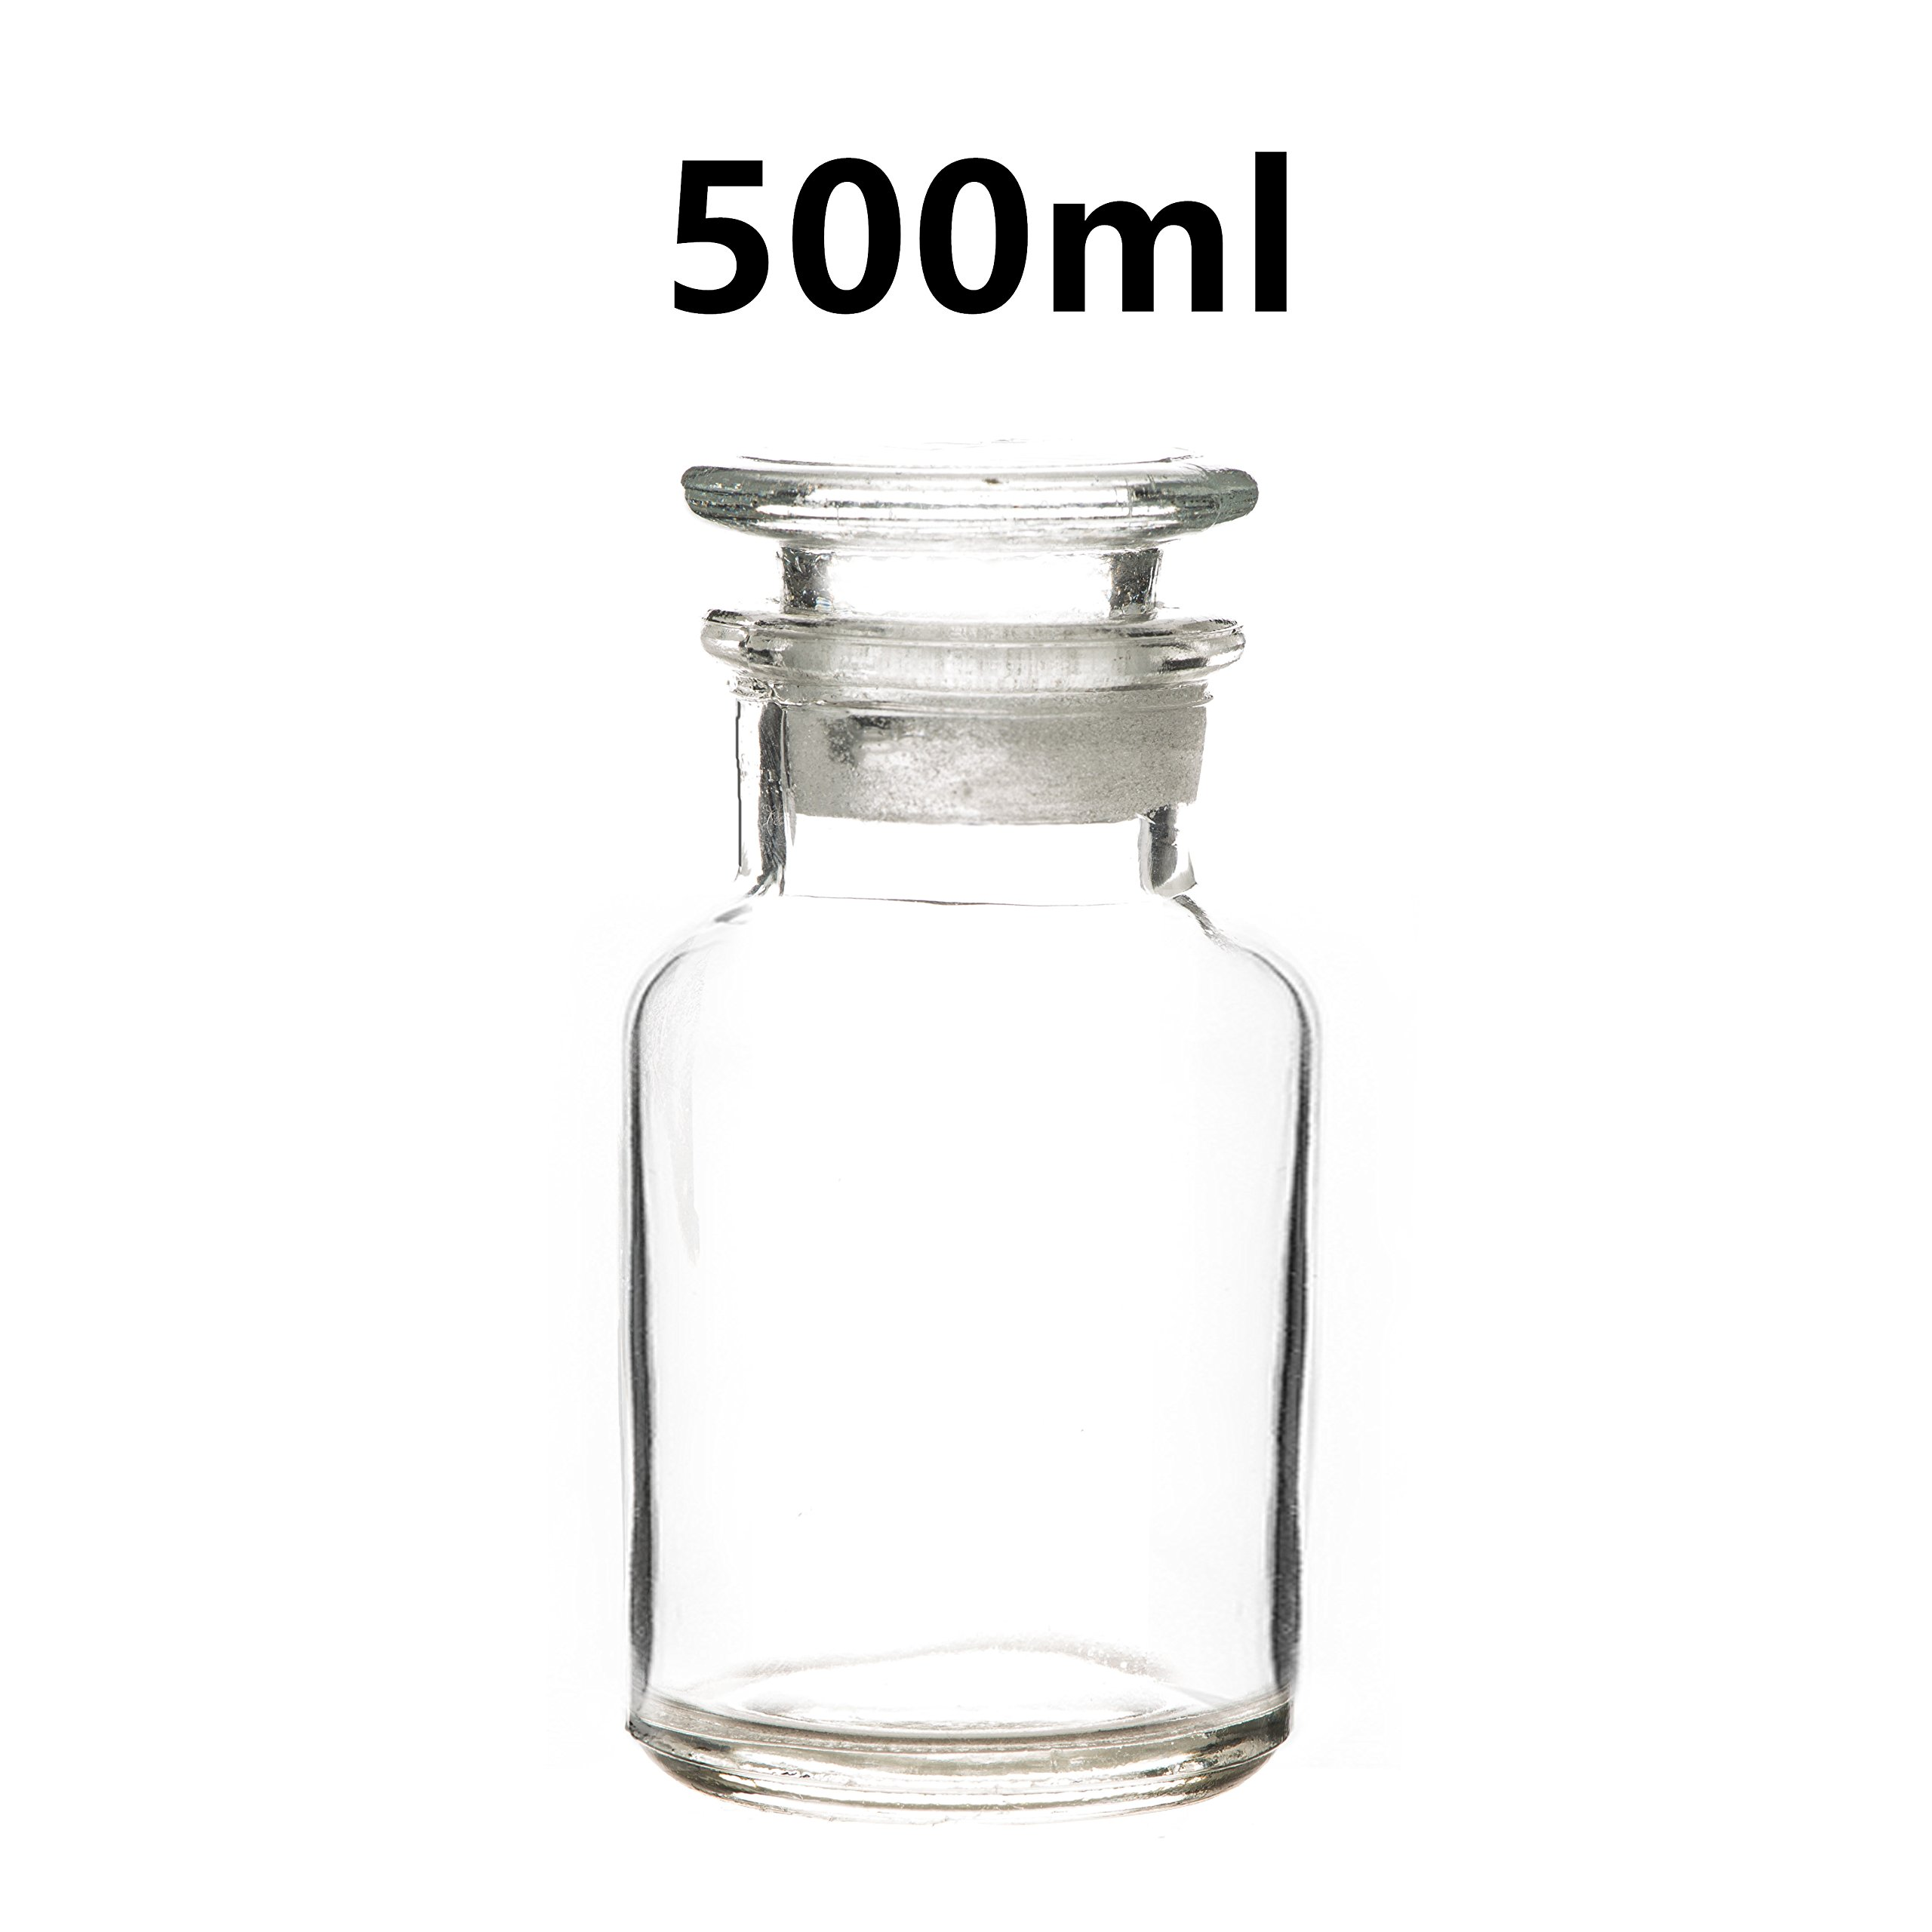 500ml Lab Reagent Sample Bottle Clear Glass Wide Mouth Bottle with Glass Lid Bottle Laboratory Supplies Reagent Sampling Bottle (Pack of 5)